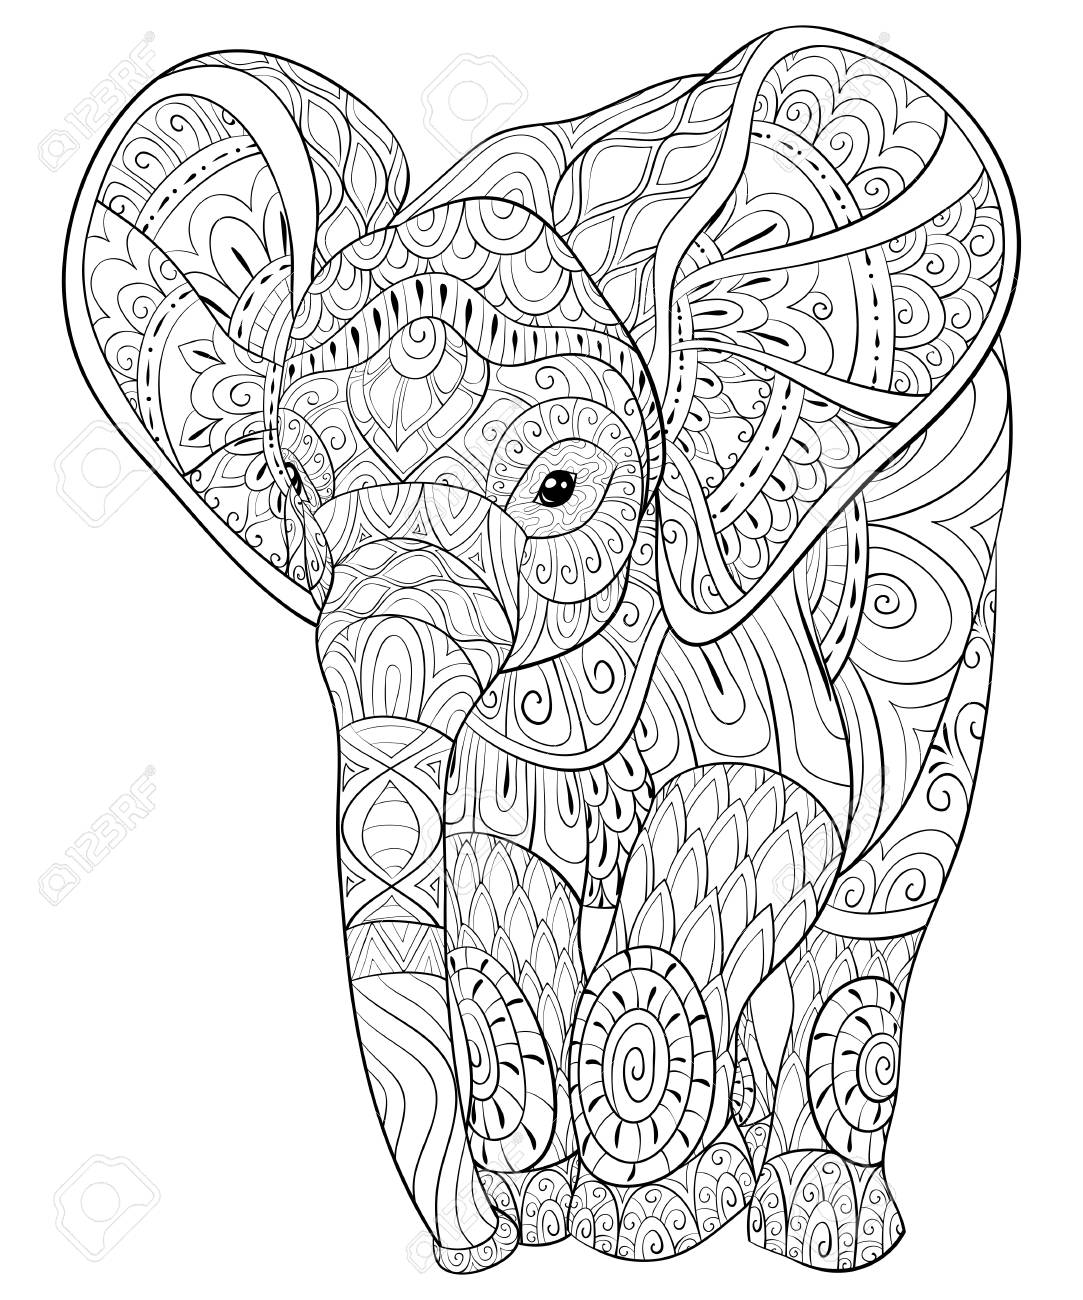 Adult Coloring Book, Page For Relaxing.Zen Art Style Illustration ...